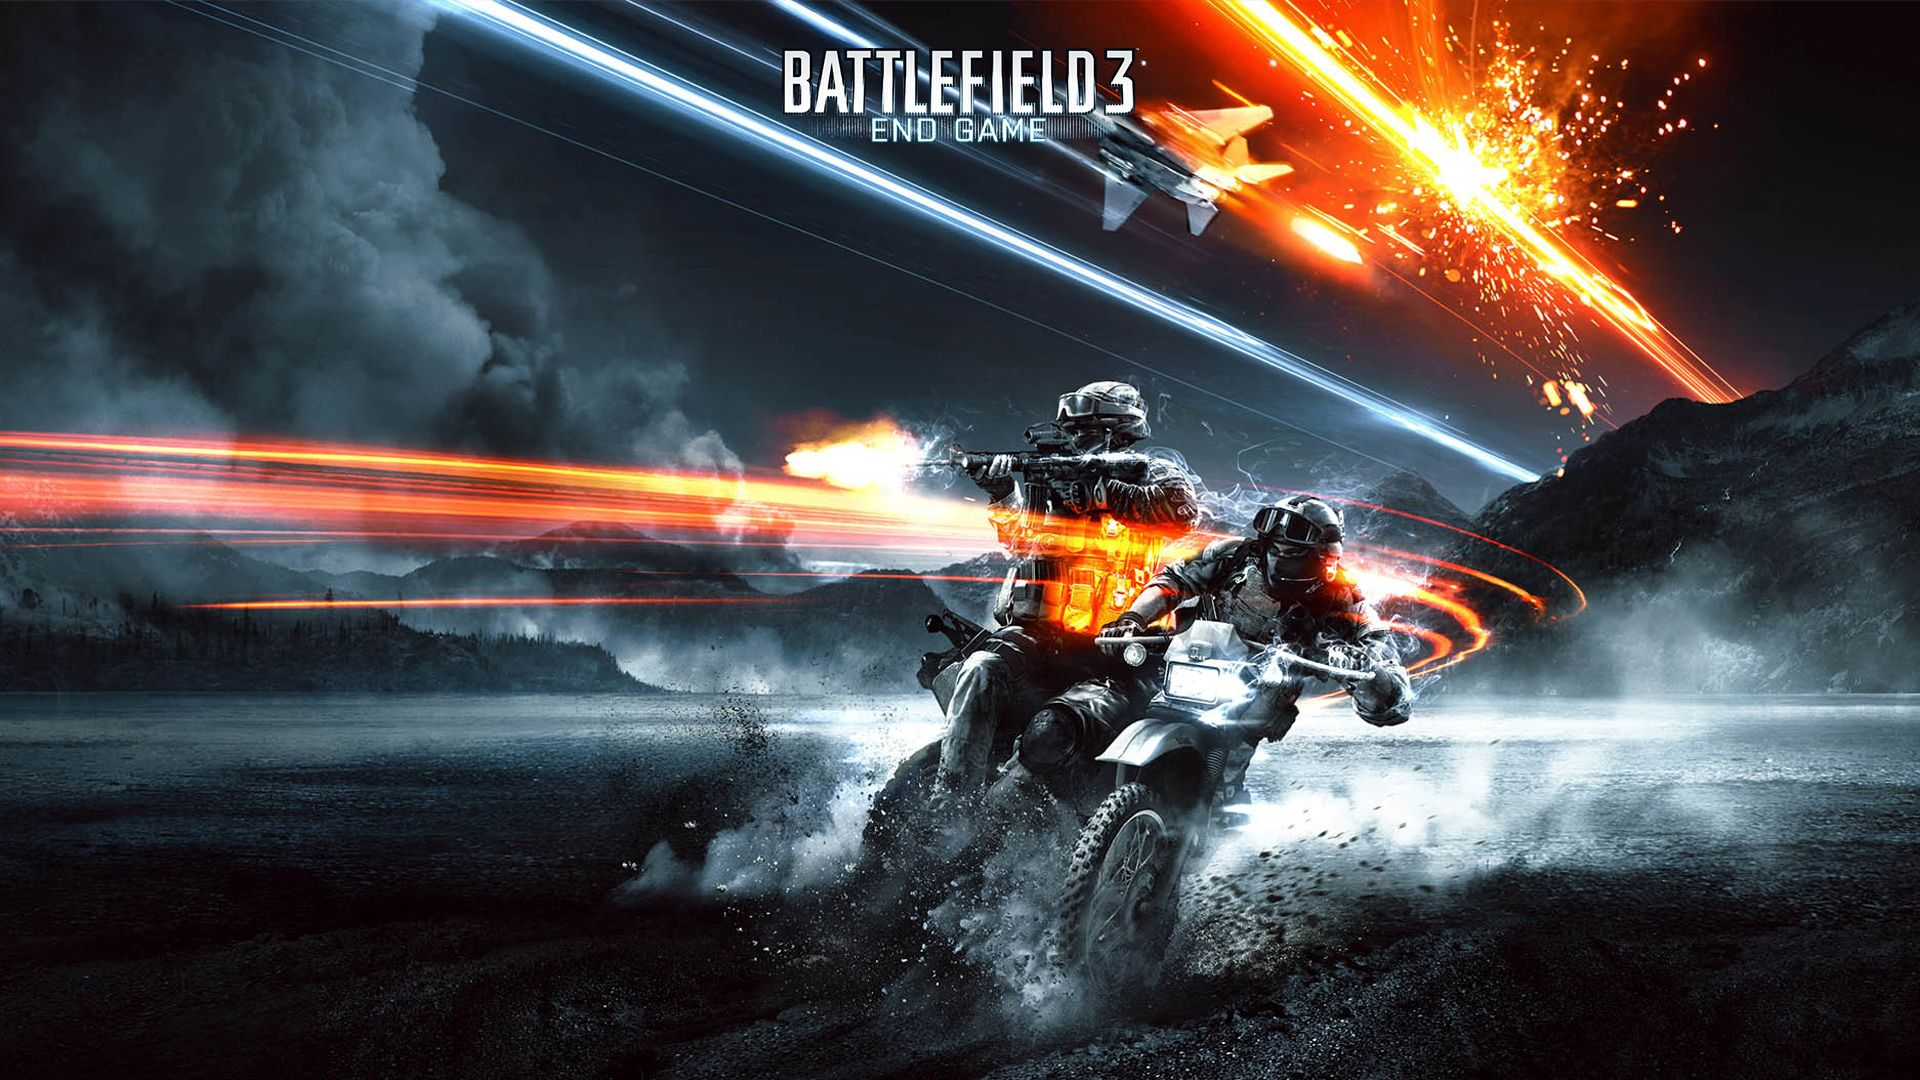 Battlefield 3 Bike Action In Hd Quality Picture Game Hd